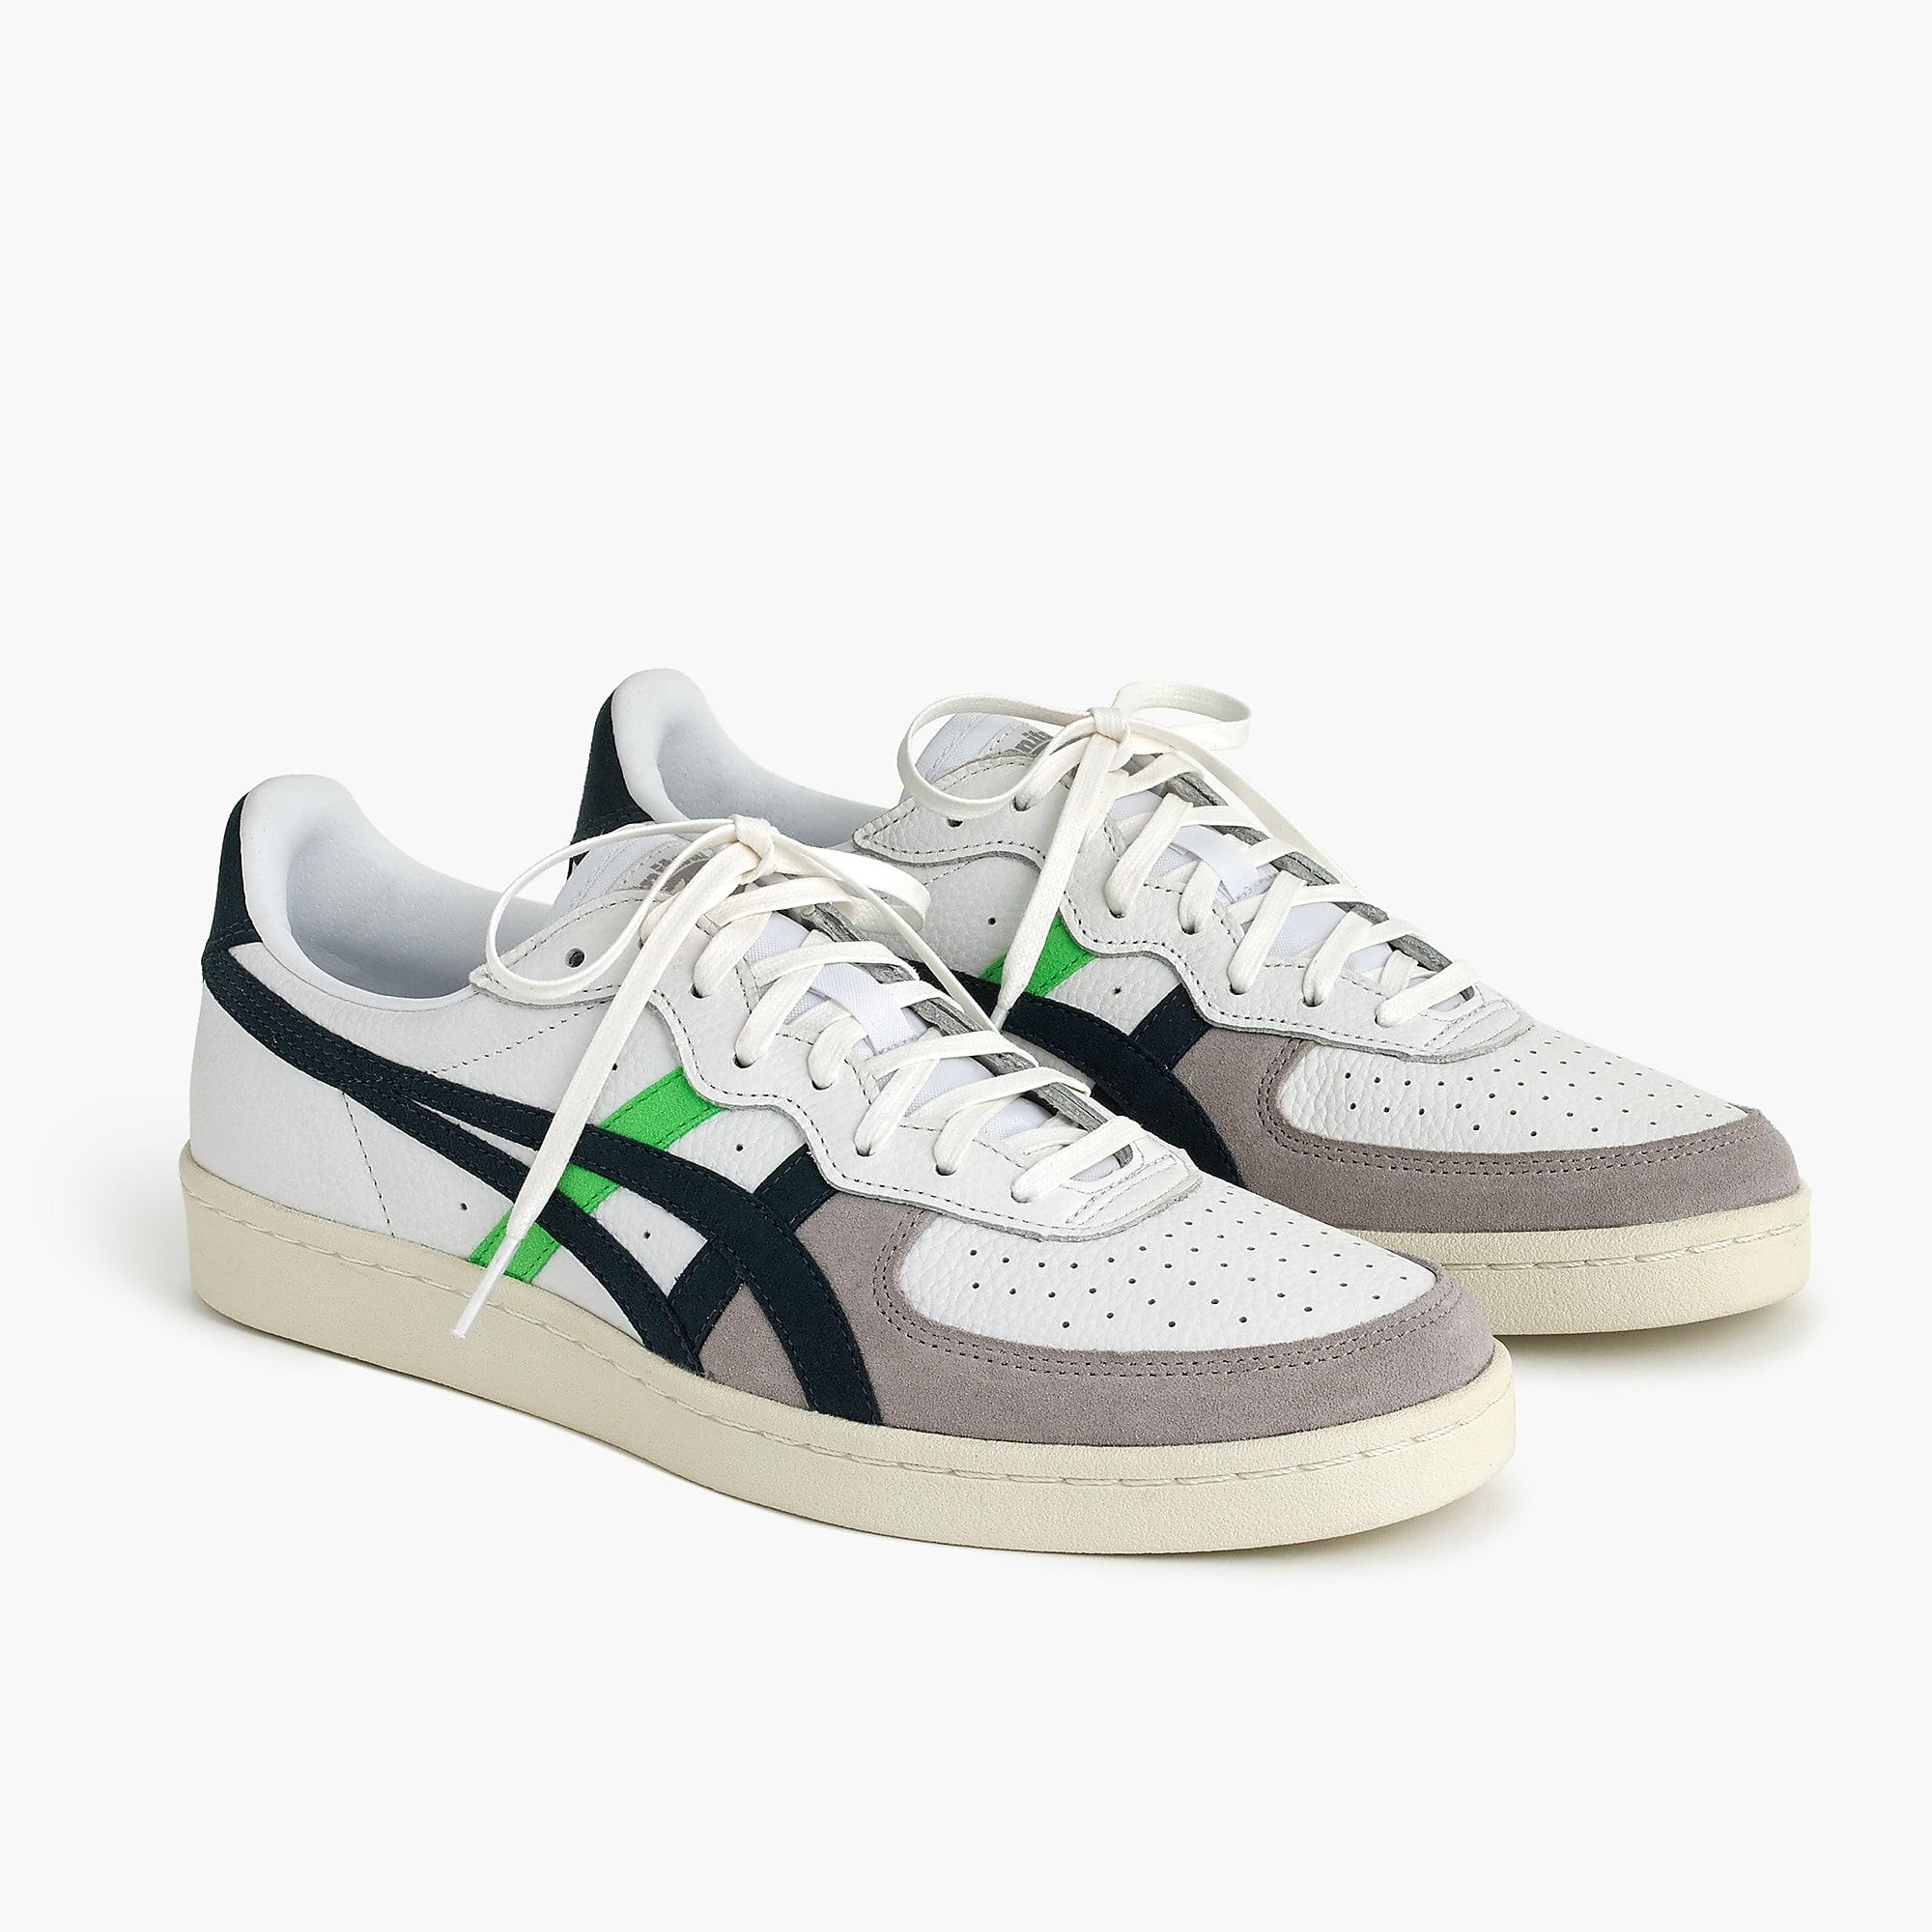 100% authentic 7e6aa 37d2d J.Crew Onitsuka Tiger Gsm Sneakers In Blue for men